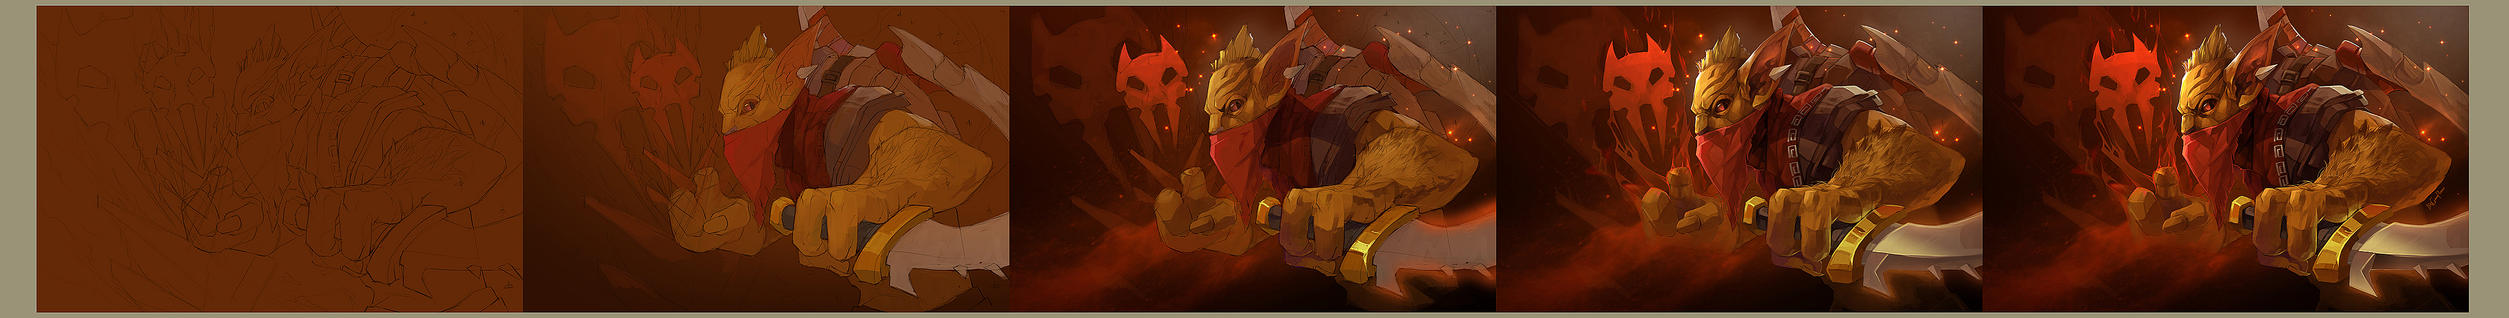 dota 2 12345 by biggreenpepper